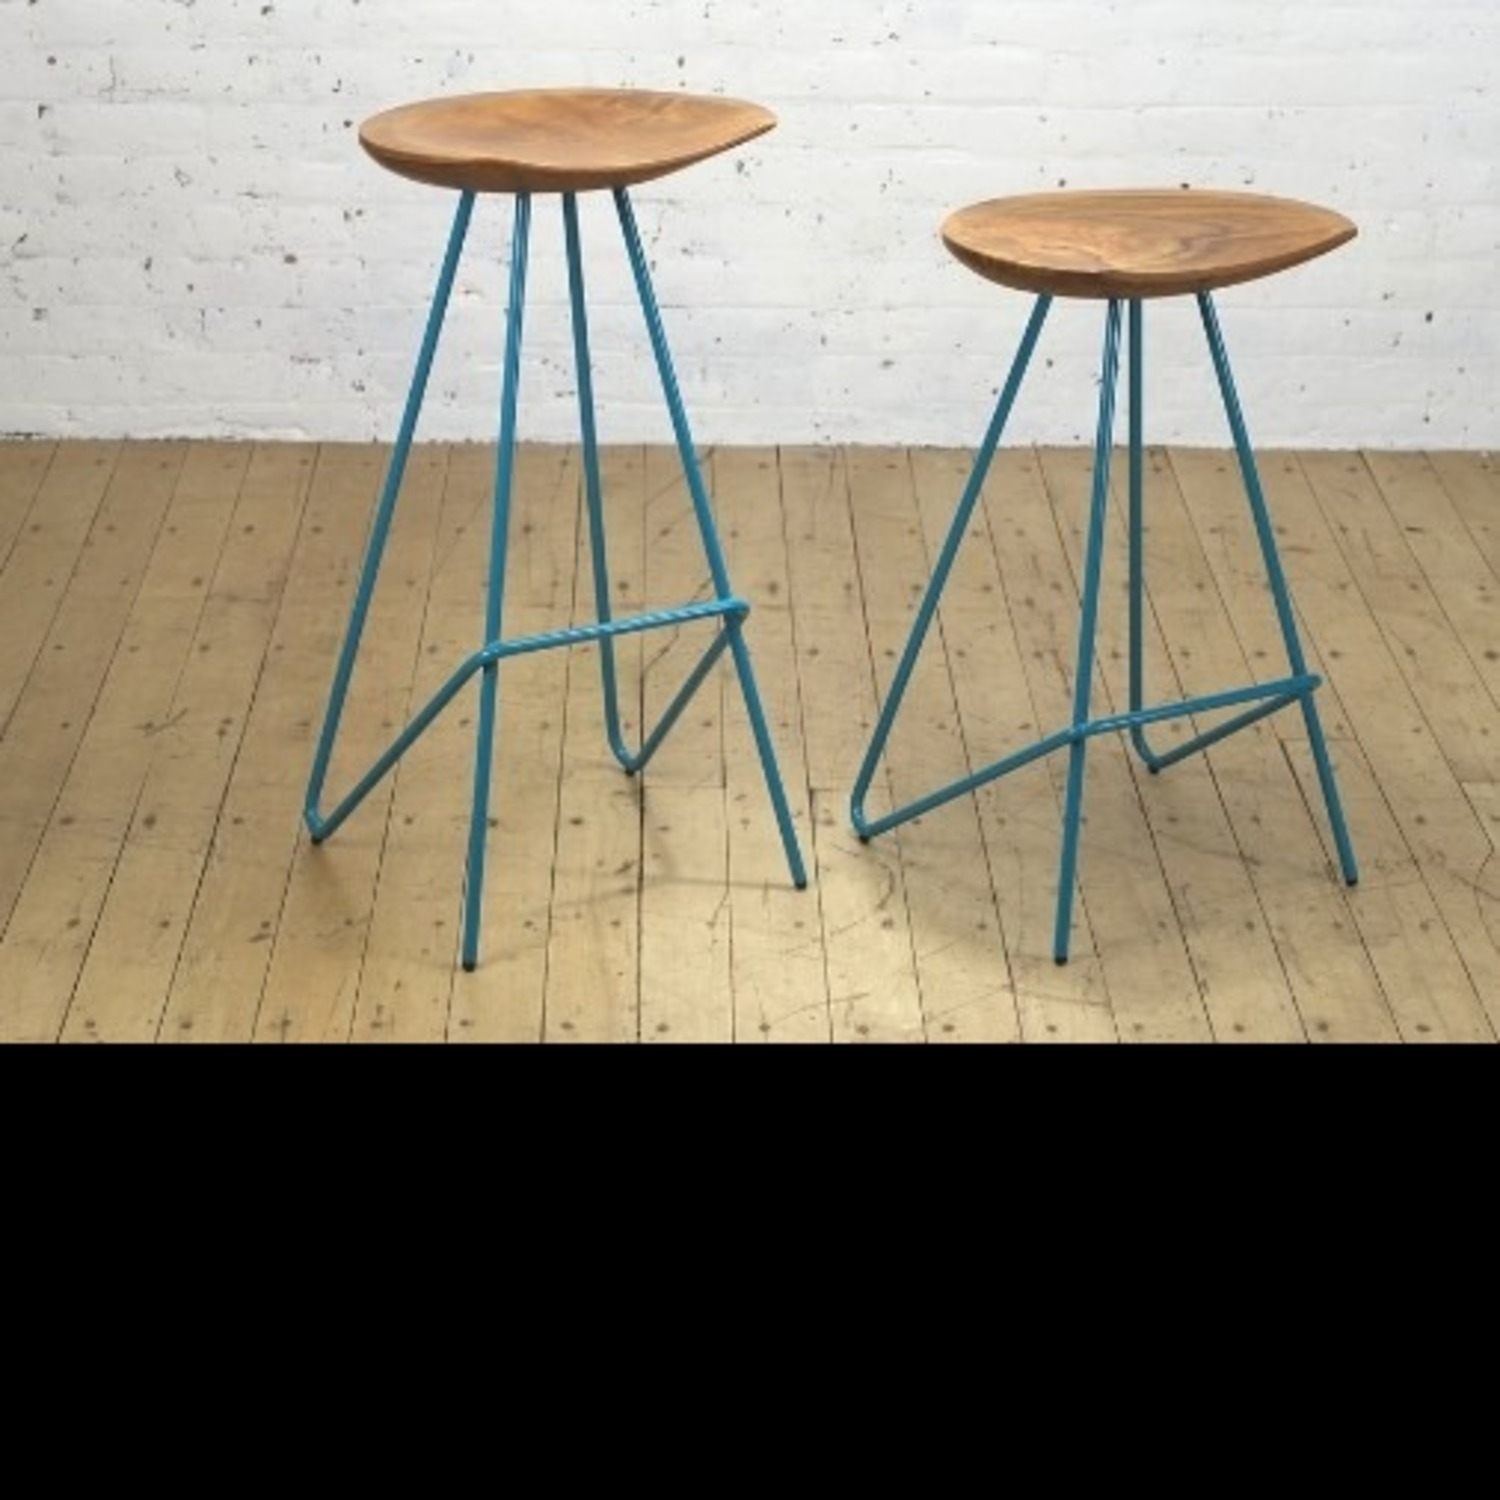 From The Source Perch Counter Stools - Set of 2 - image-14